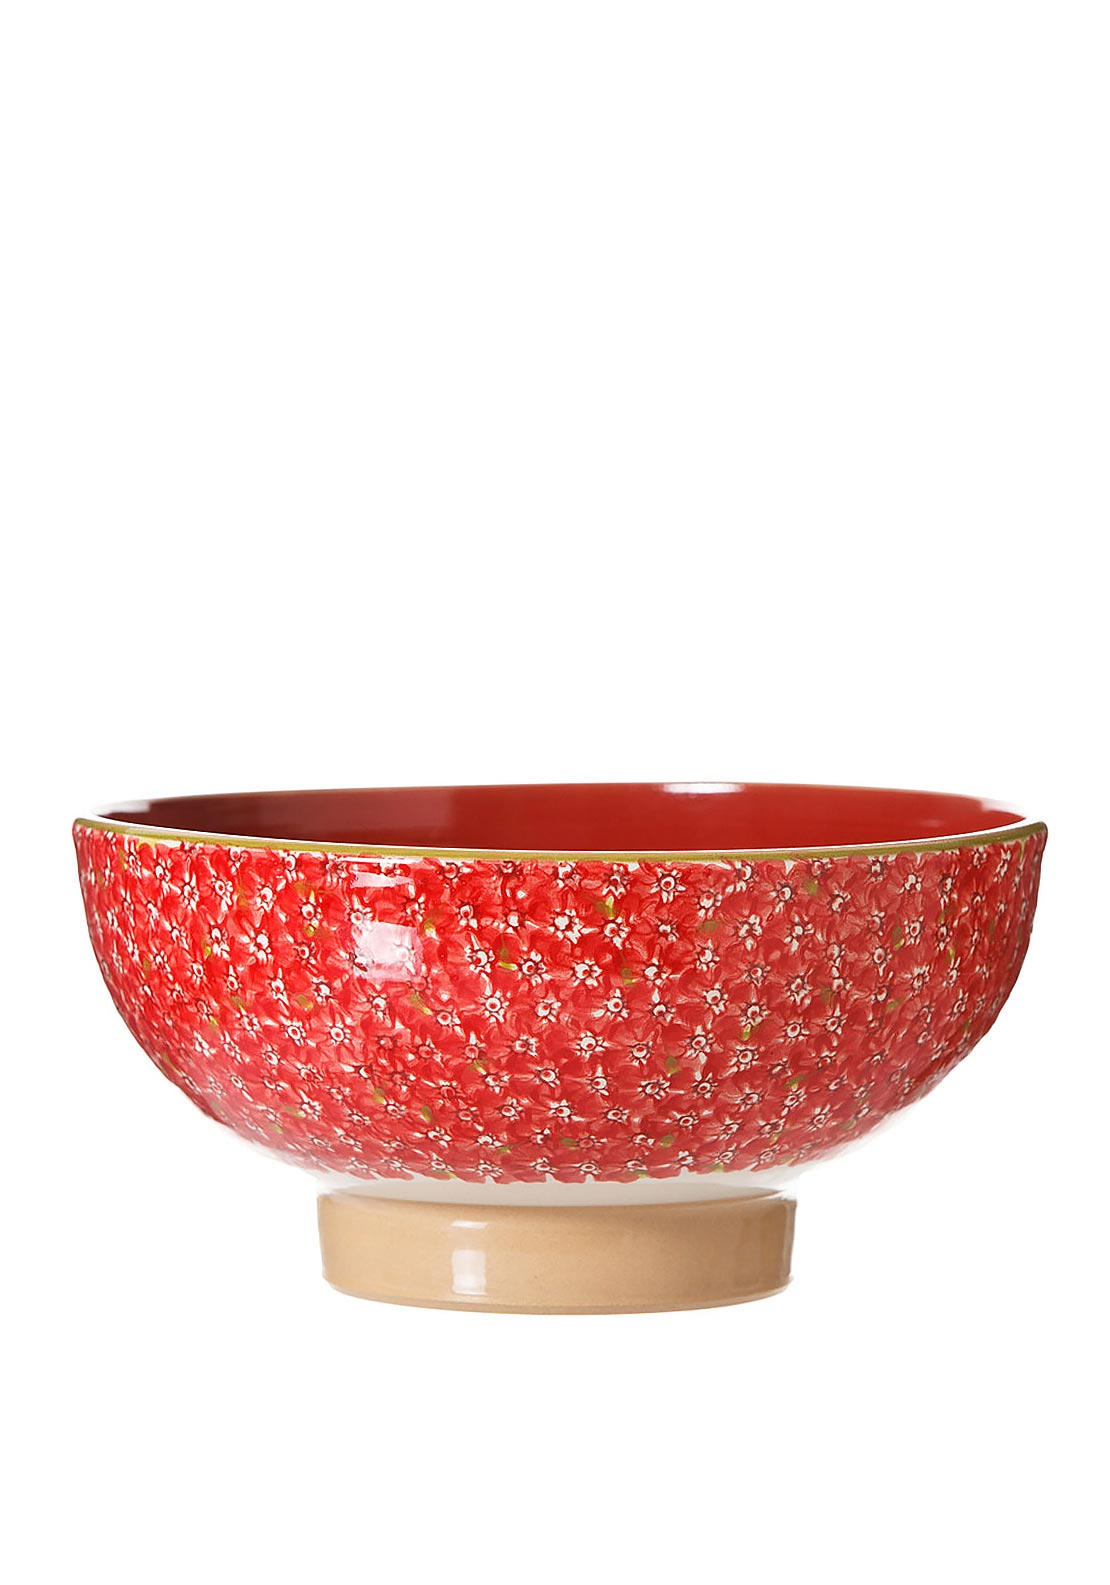 Nicholas Mosse Pottery Red Lawn Salad Bowl